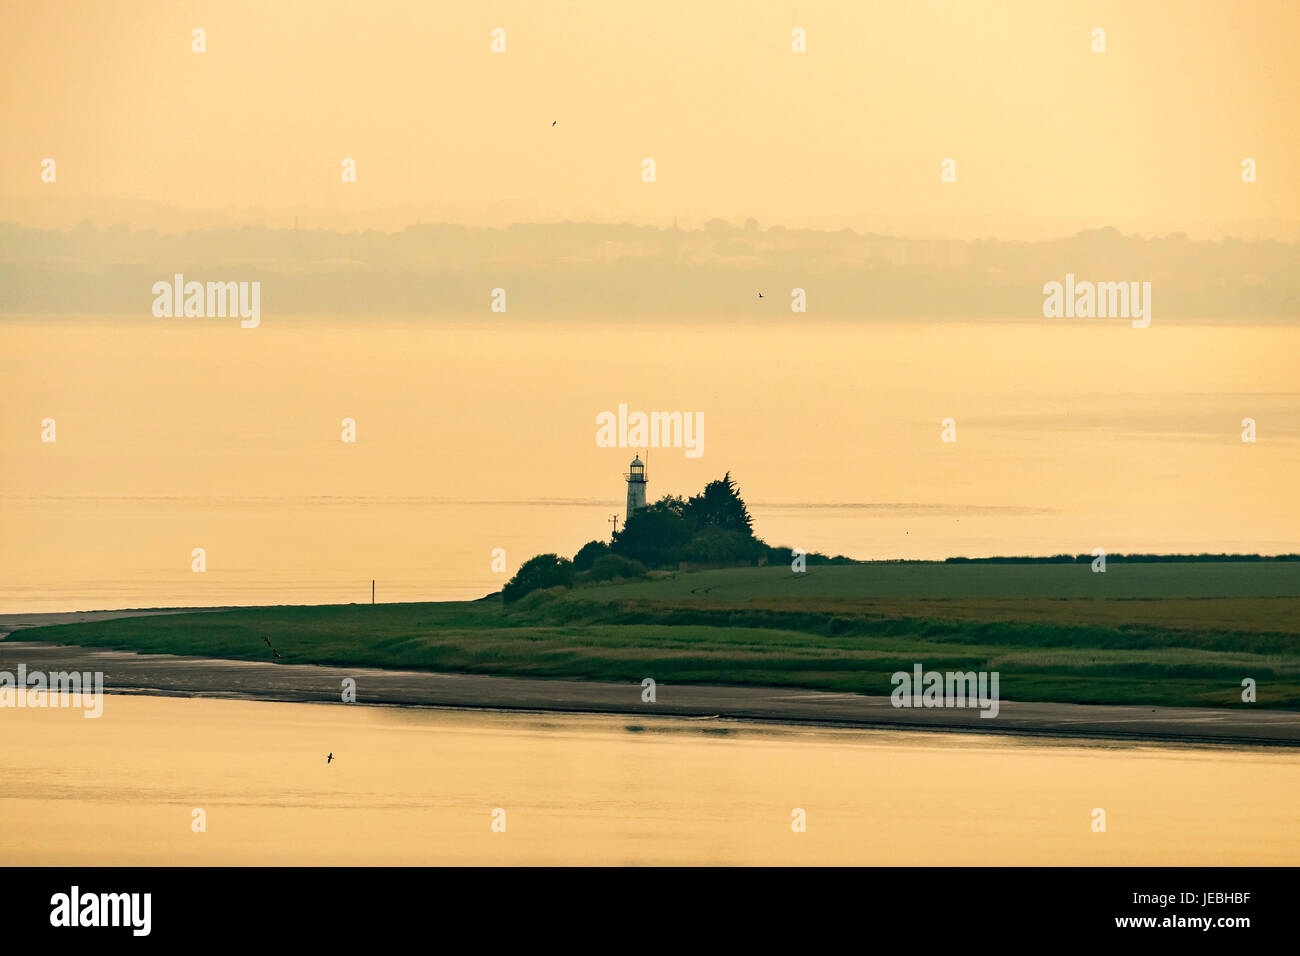 Hale Lighthouse on the river Mersey. - Stock Image